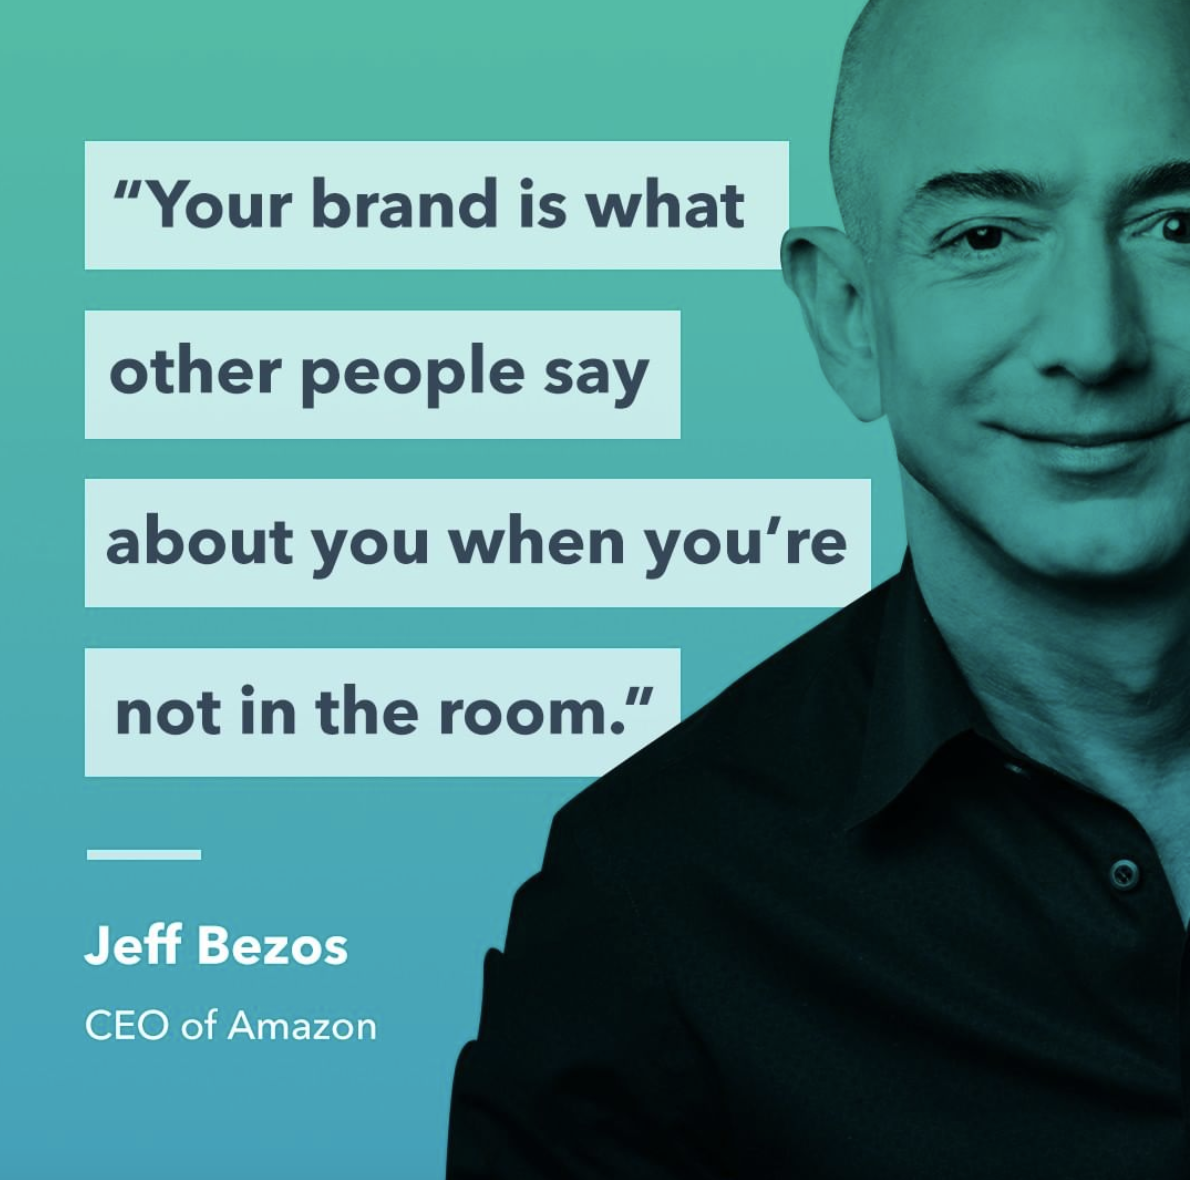 What is employer branding? Defined by Jeff Bezos.